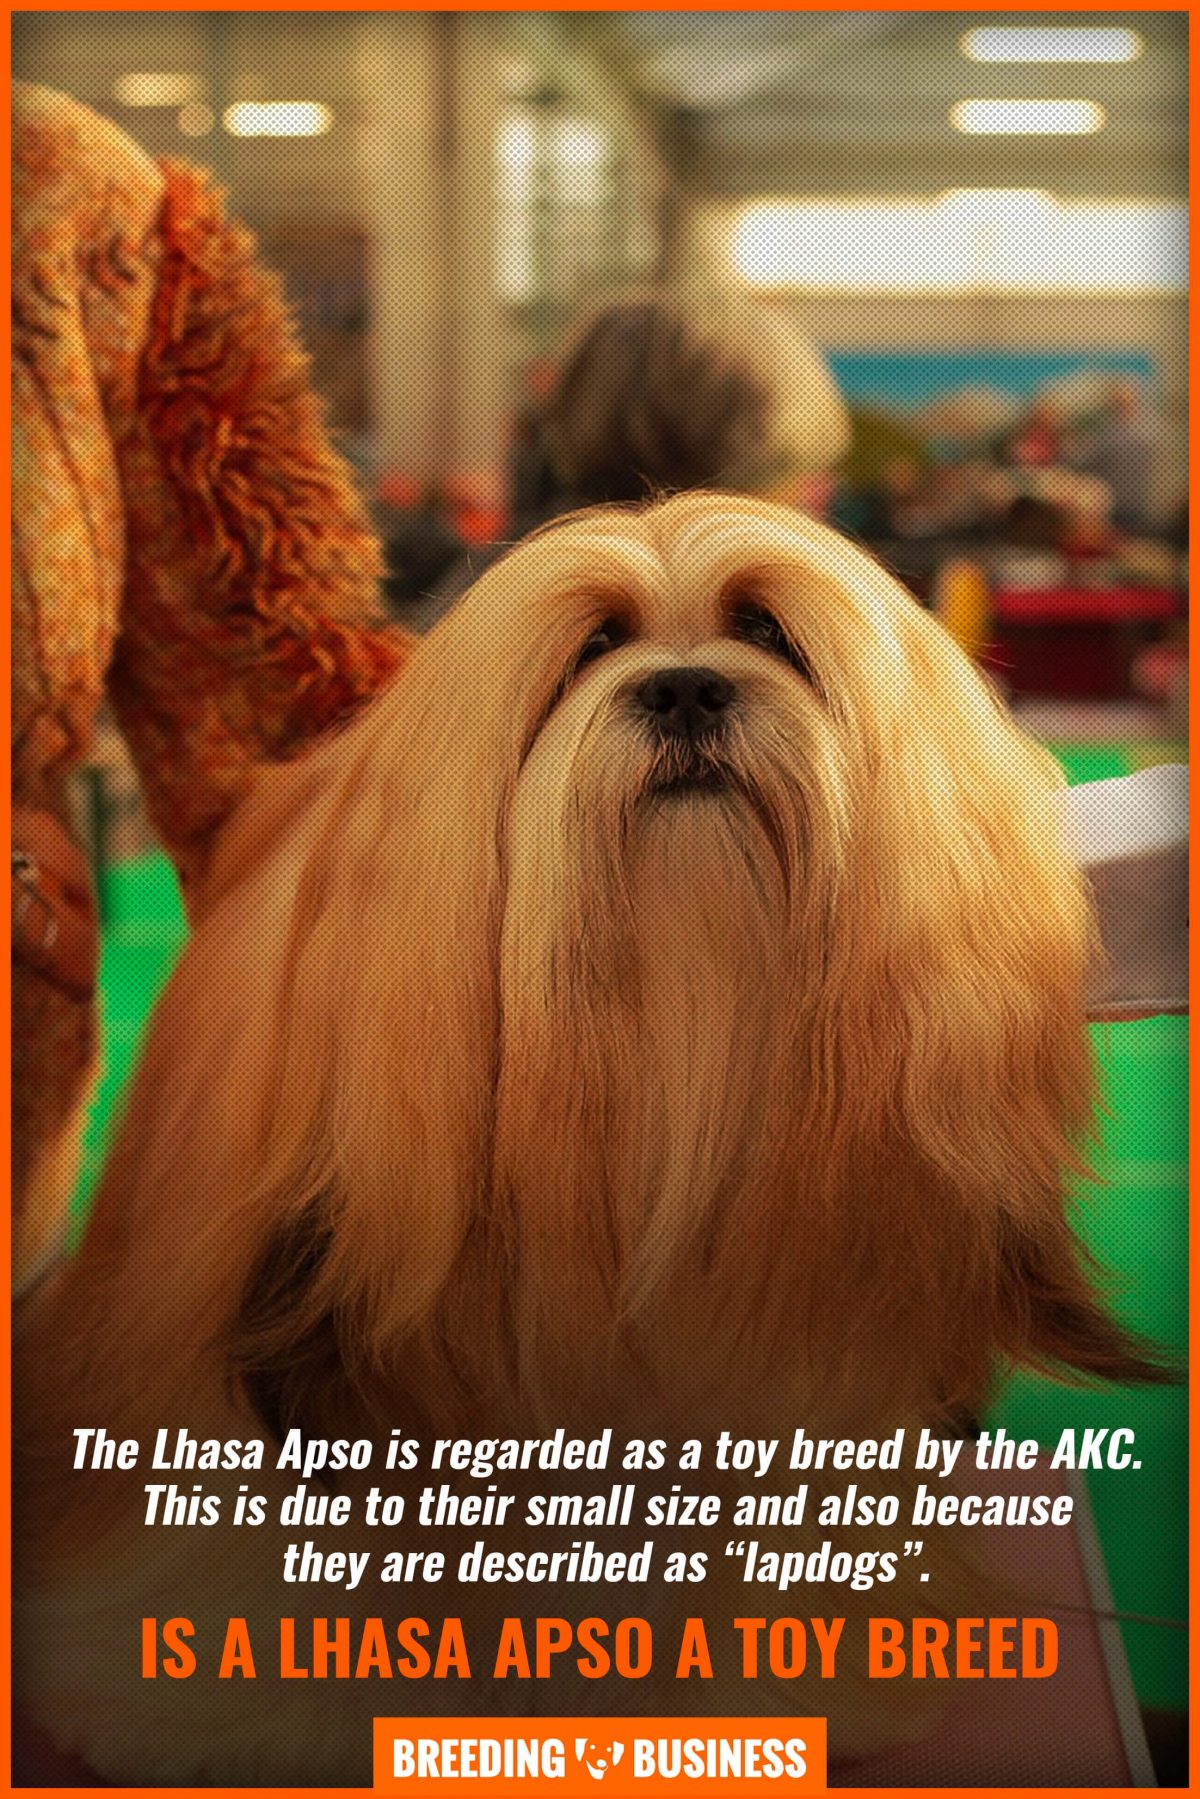 is a lhasa apso a toy breed